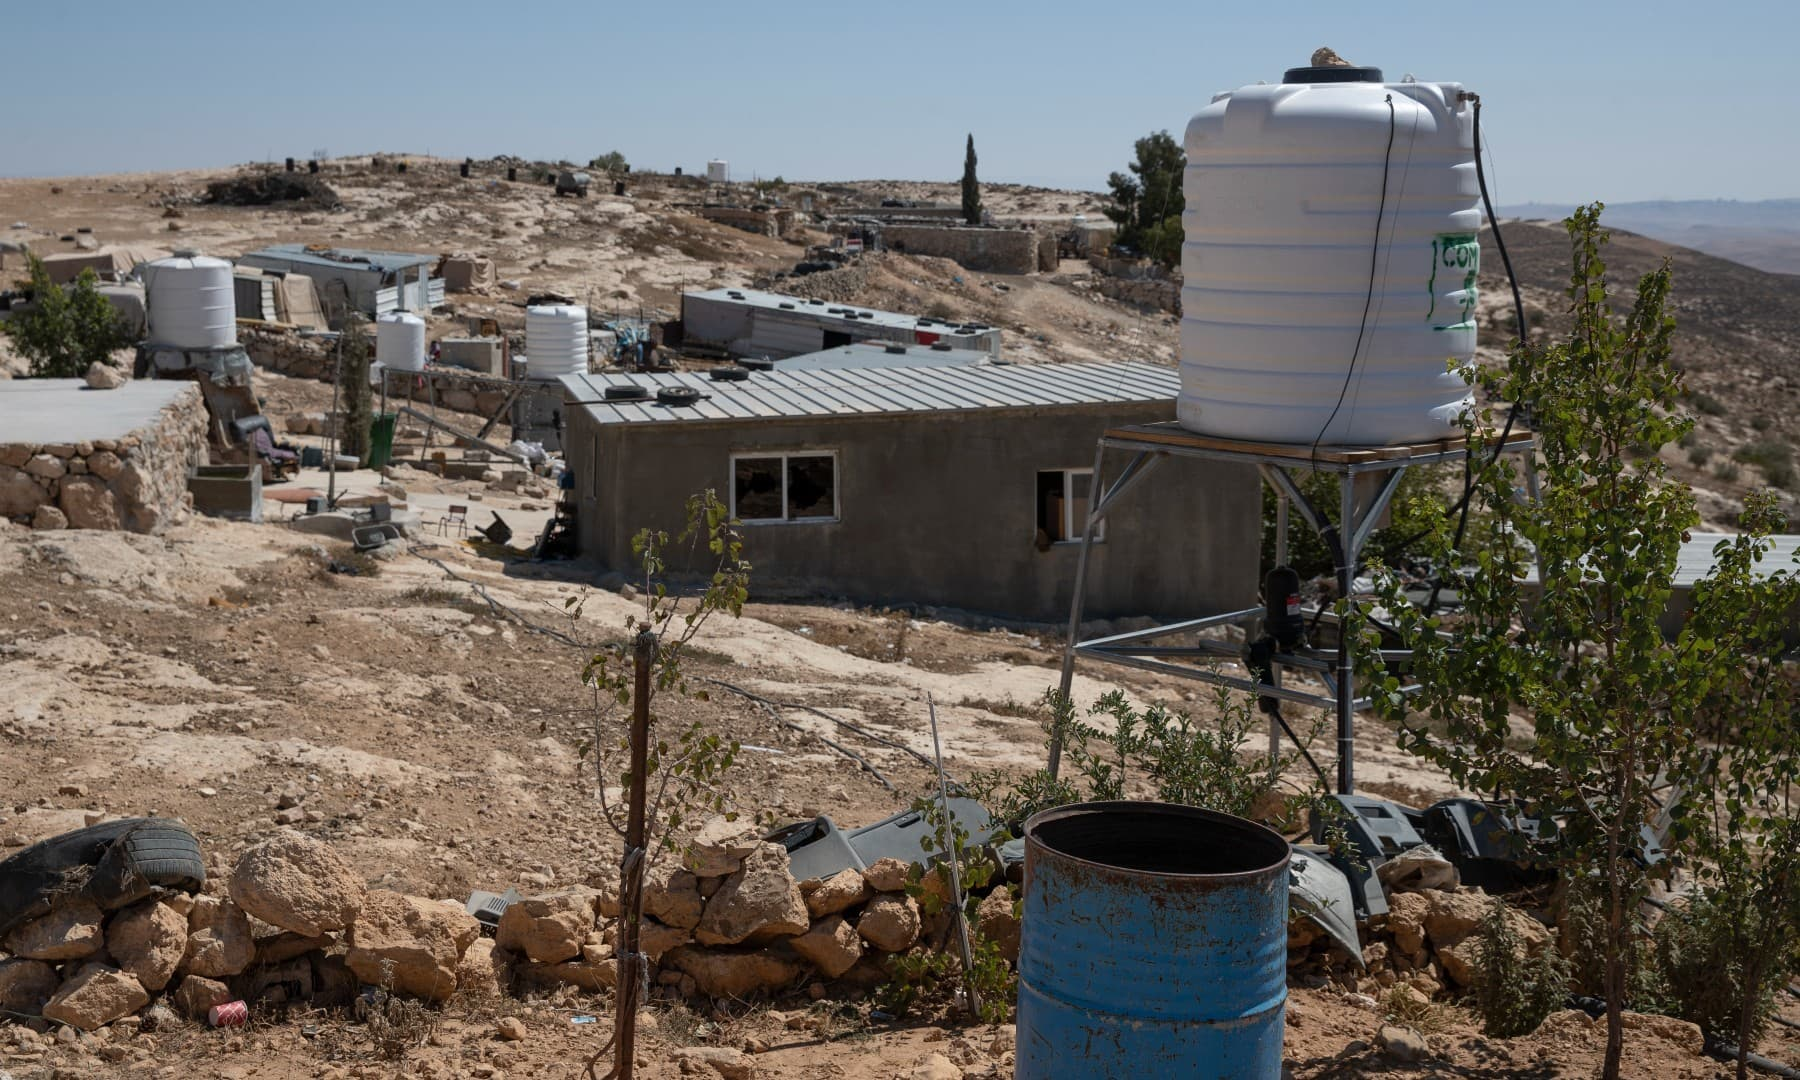 A new water tank rests on a stand after it replaced a damaged one following a settlers' attack from nearby settlement outposts on the Palestinian Bedouin community, in the West Bank village of Al-Mufagara, on Sept 30. — AP